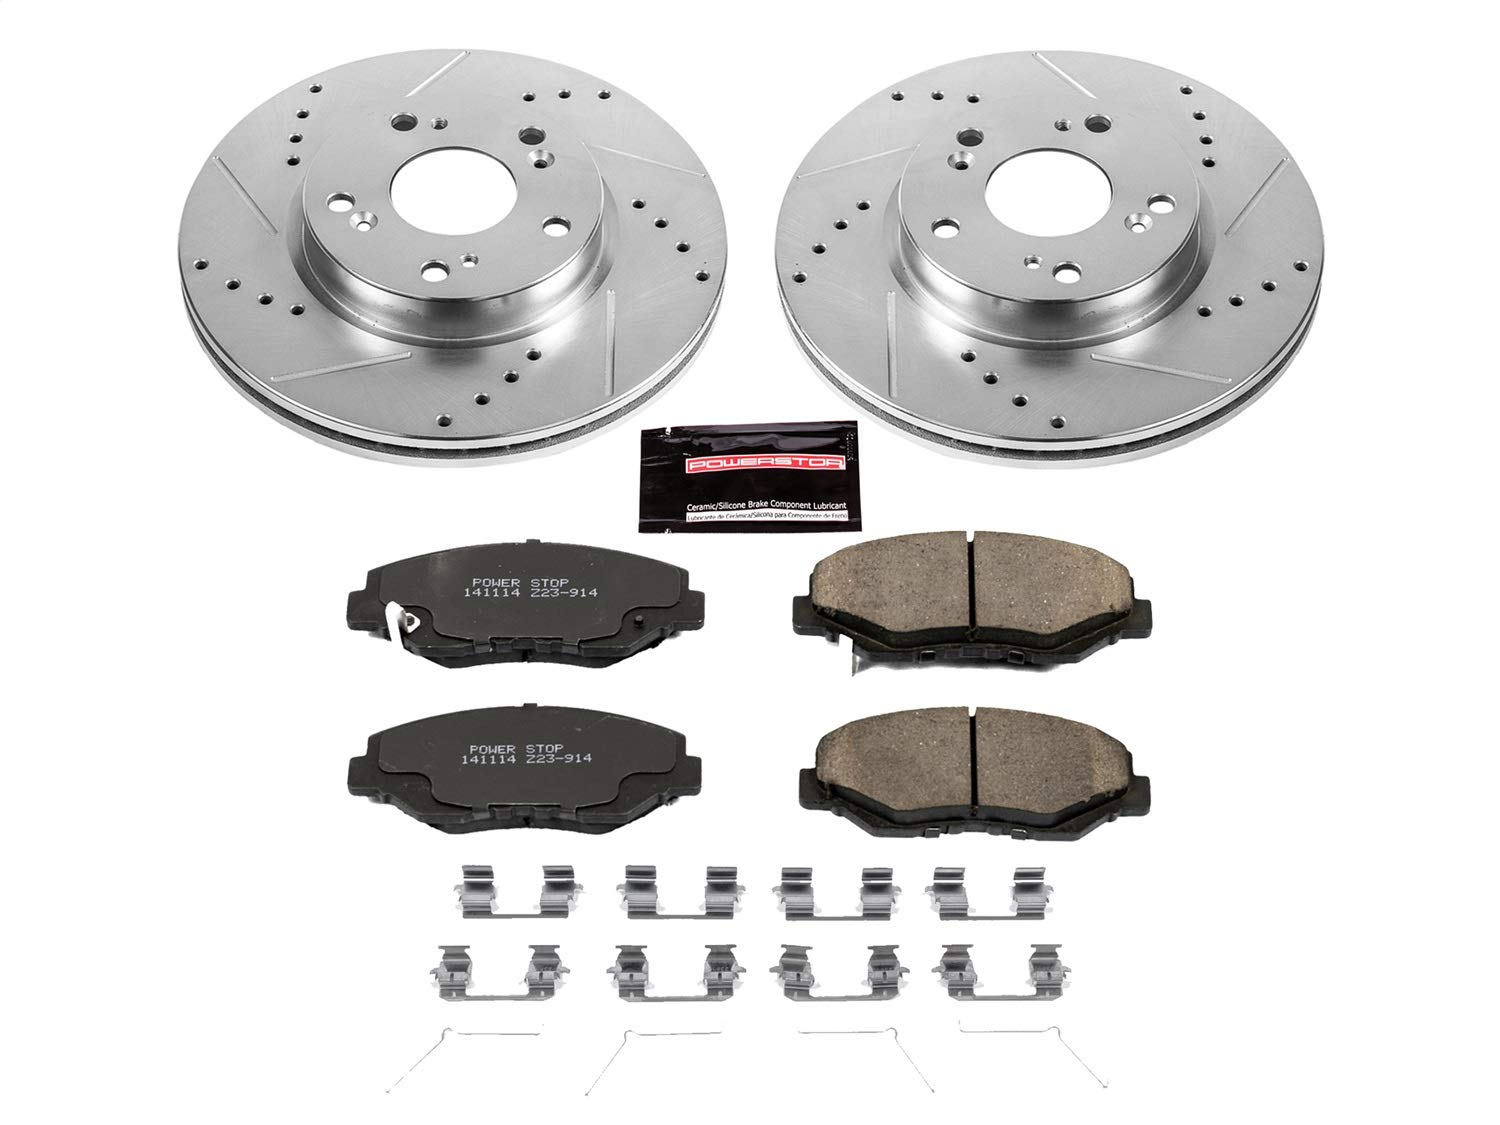 Power Stop K6490 Front Z23 Evolution Brake Kit with Drilled//Slotted Rotors and Ceramic Brake Pads